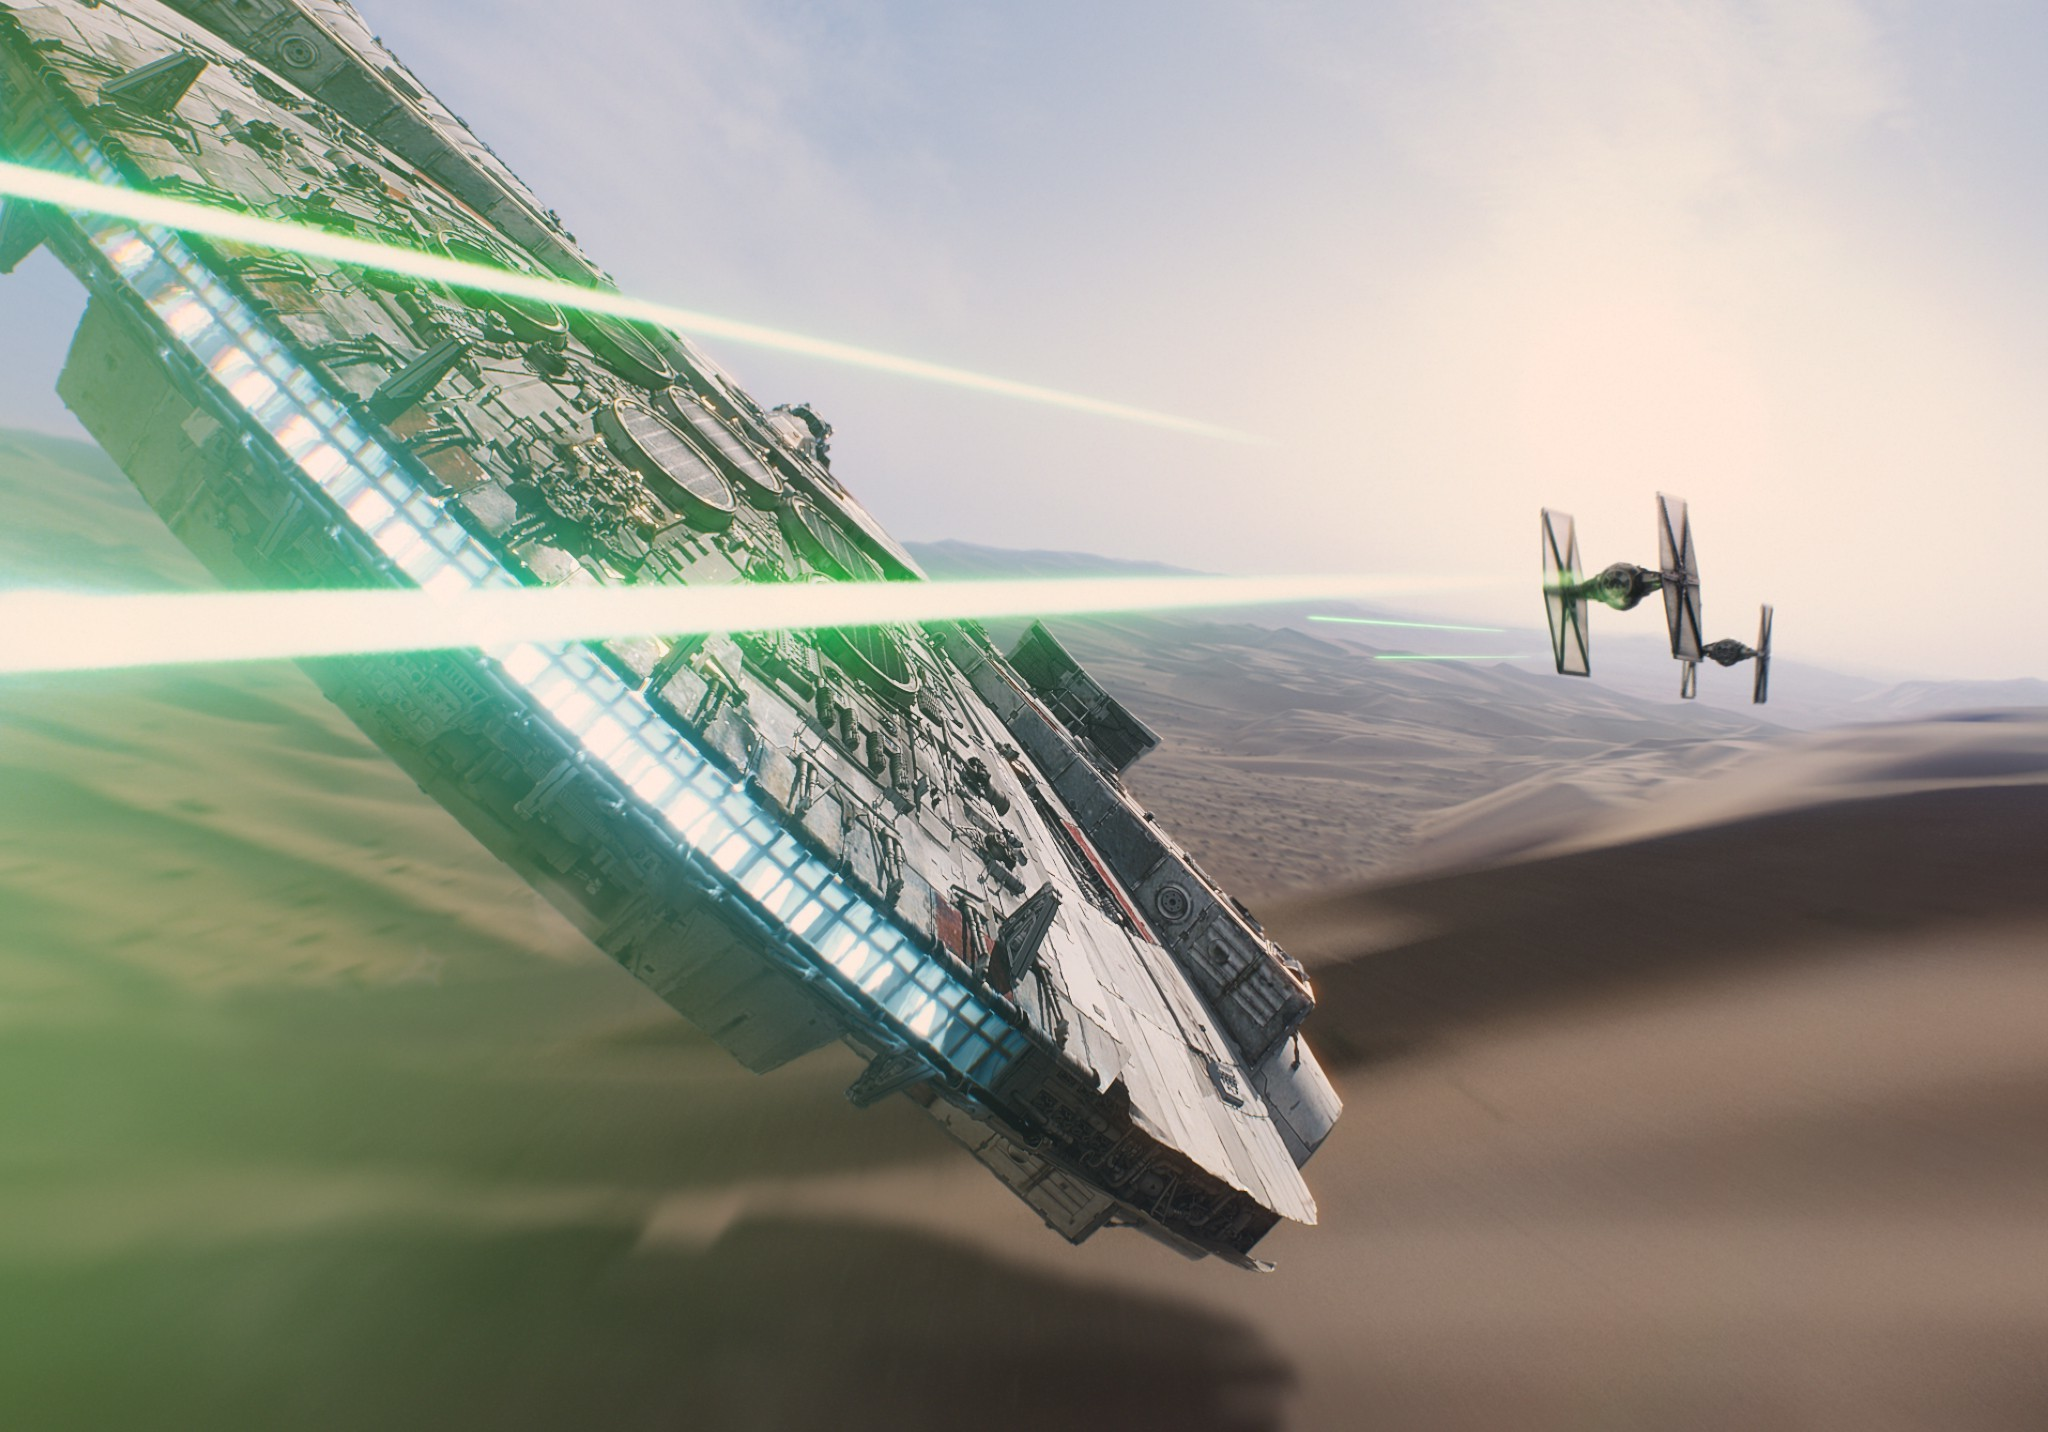 2048x1432 Star Wars, Star Wars: Episode VII The Force Awakens, Millennium Falcon